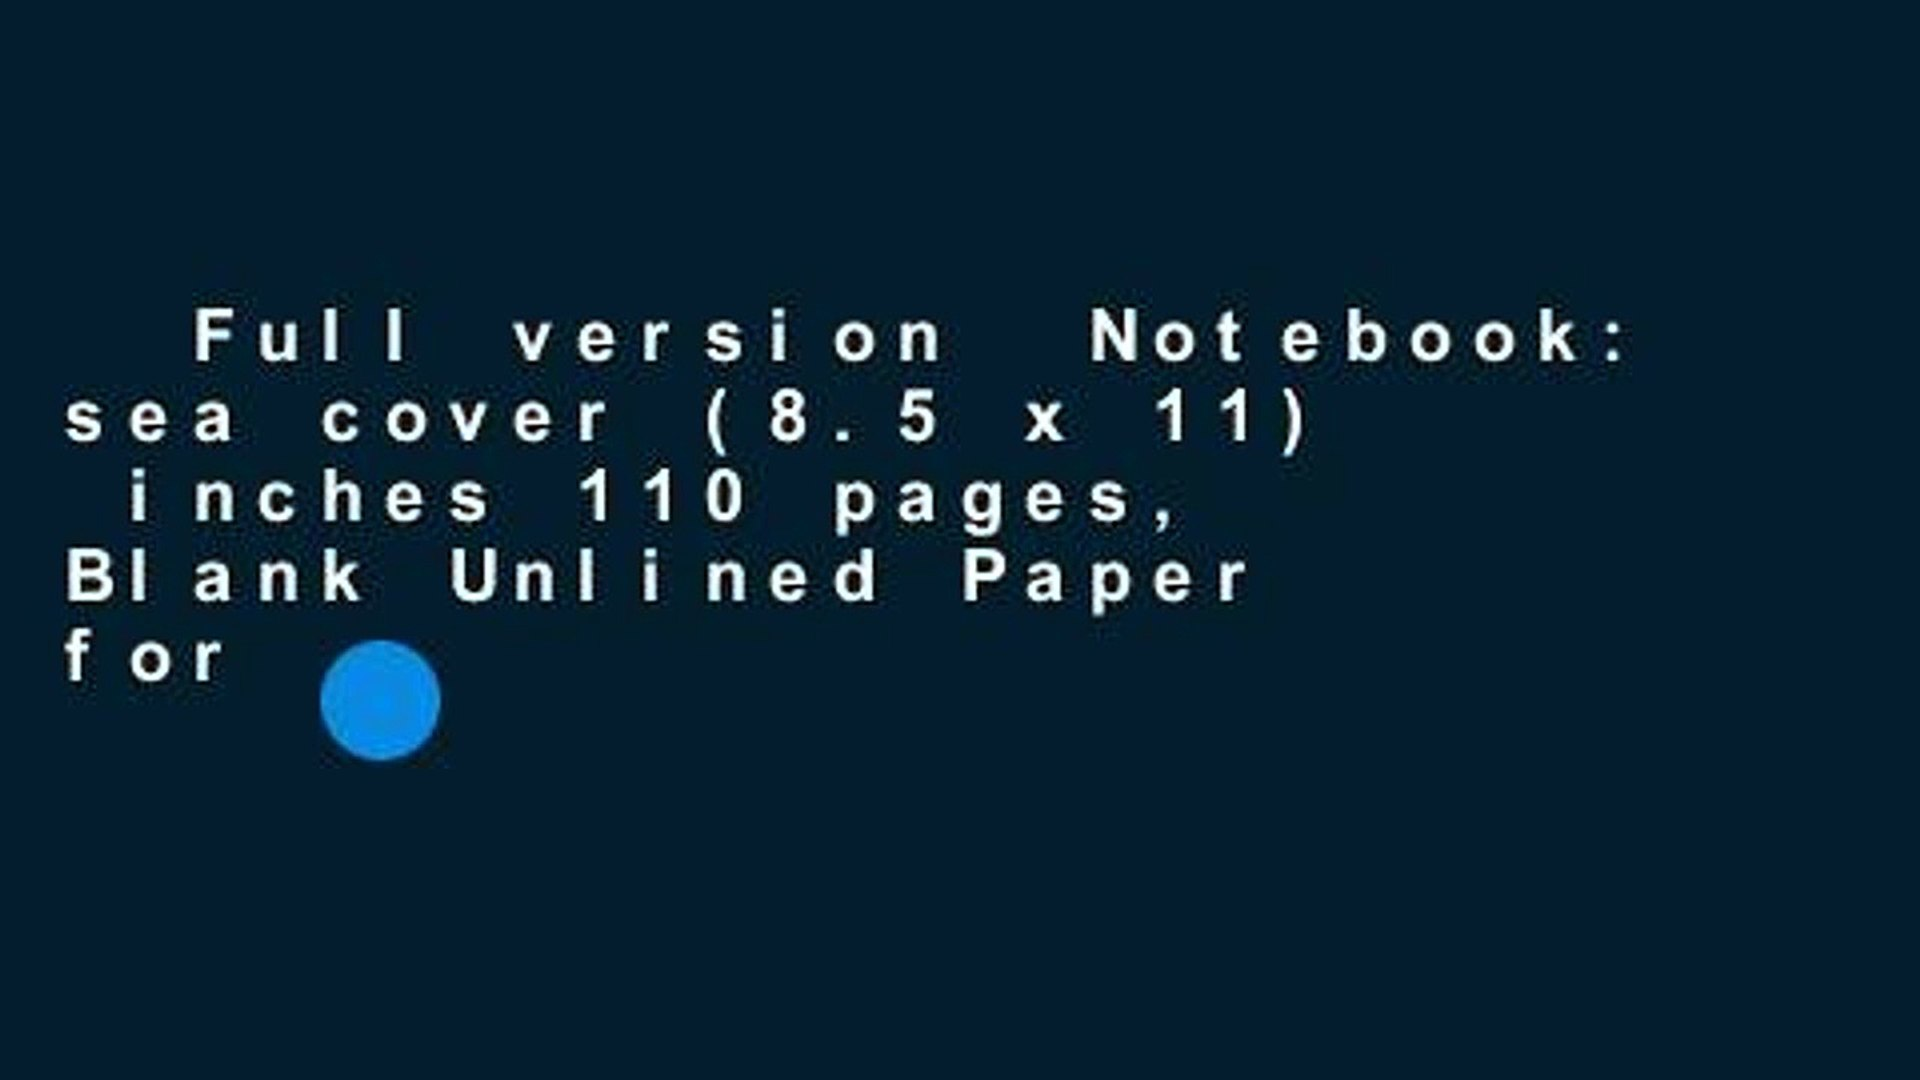 Full version  Notebook: sea cover (8.5 x 11)  inches 110 pages, Blank Unlined Paper for